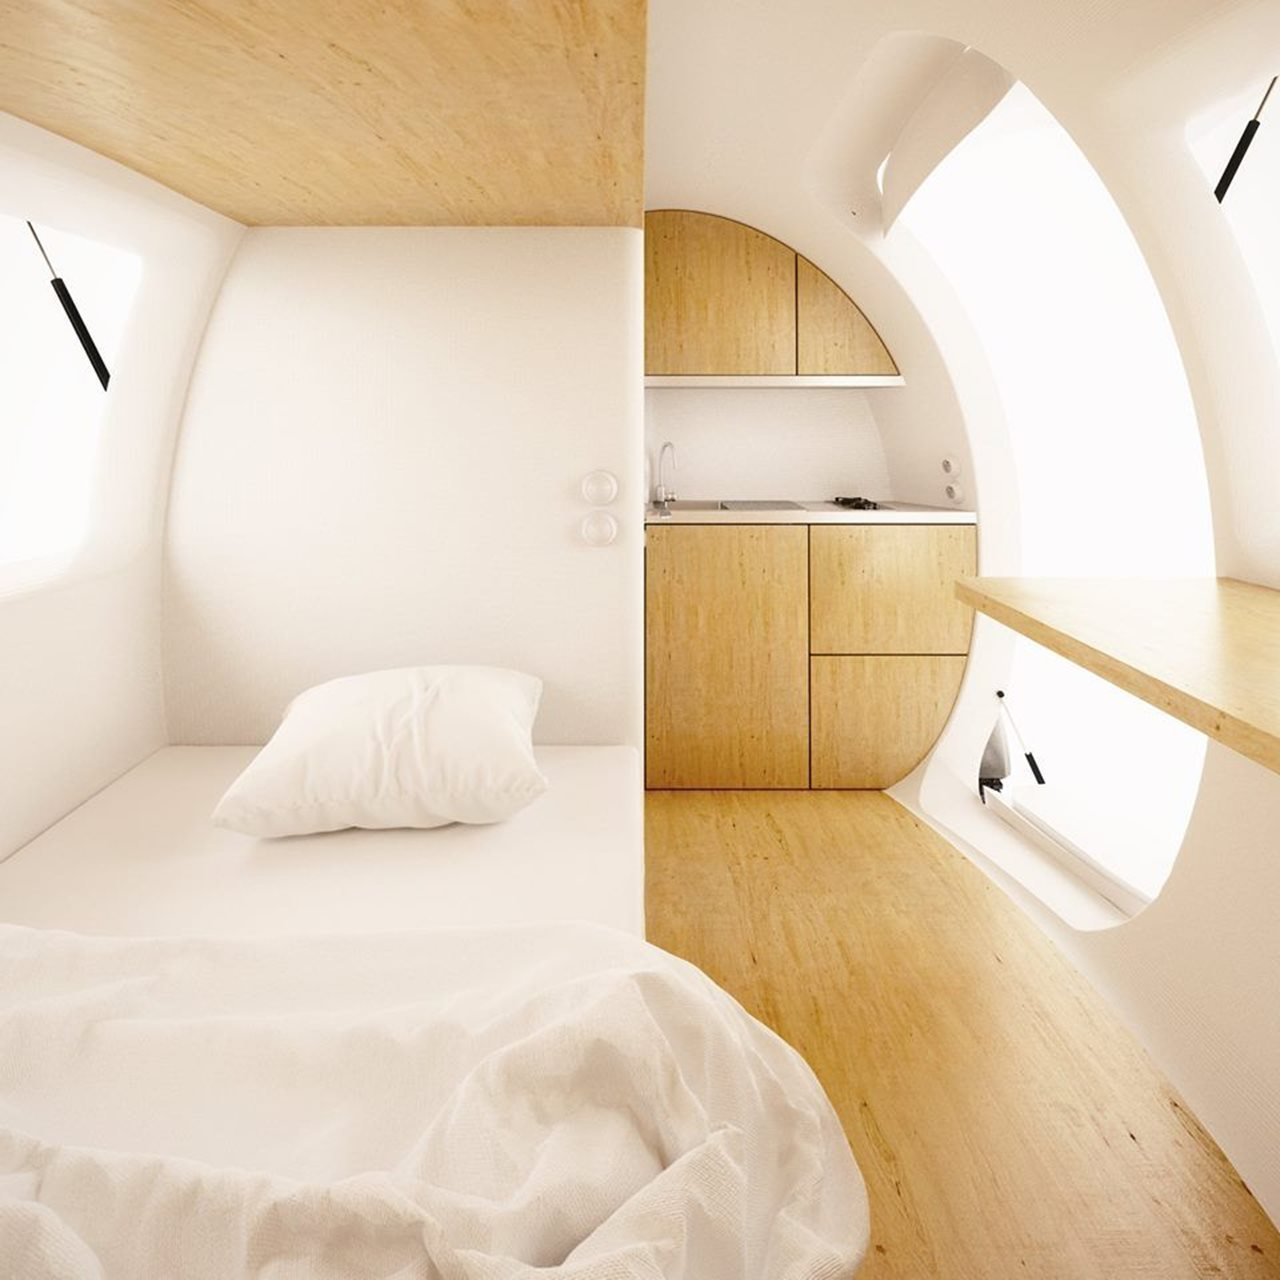 ECOCAPSULE THE LUXURY TRENDS